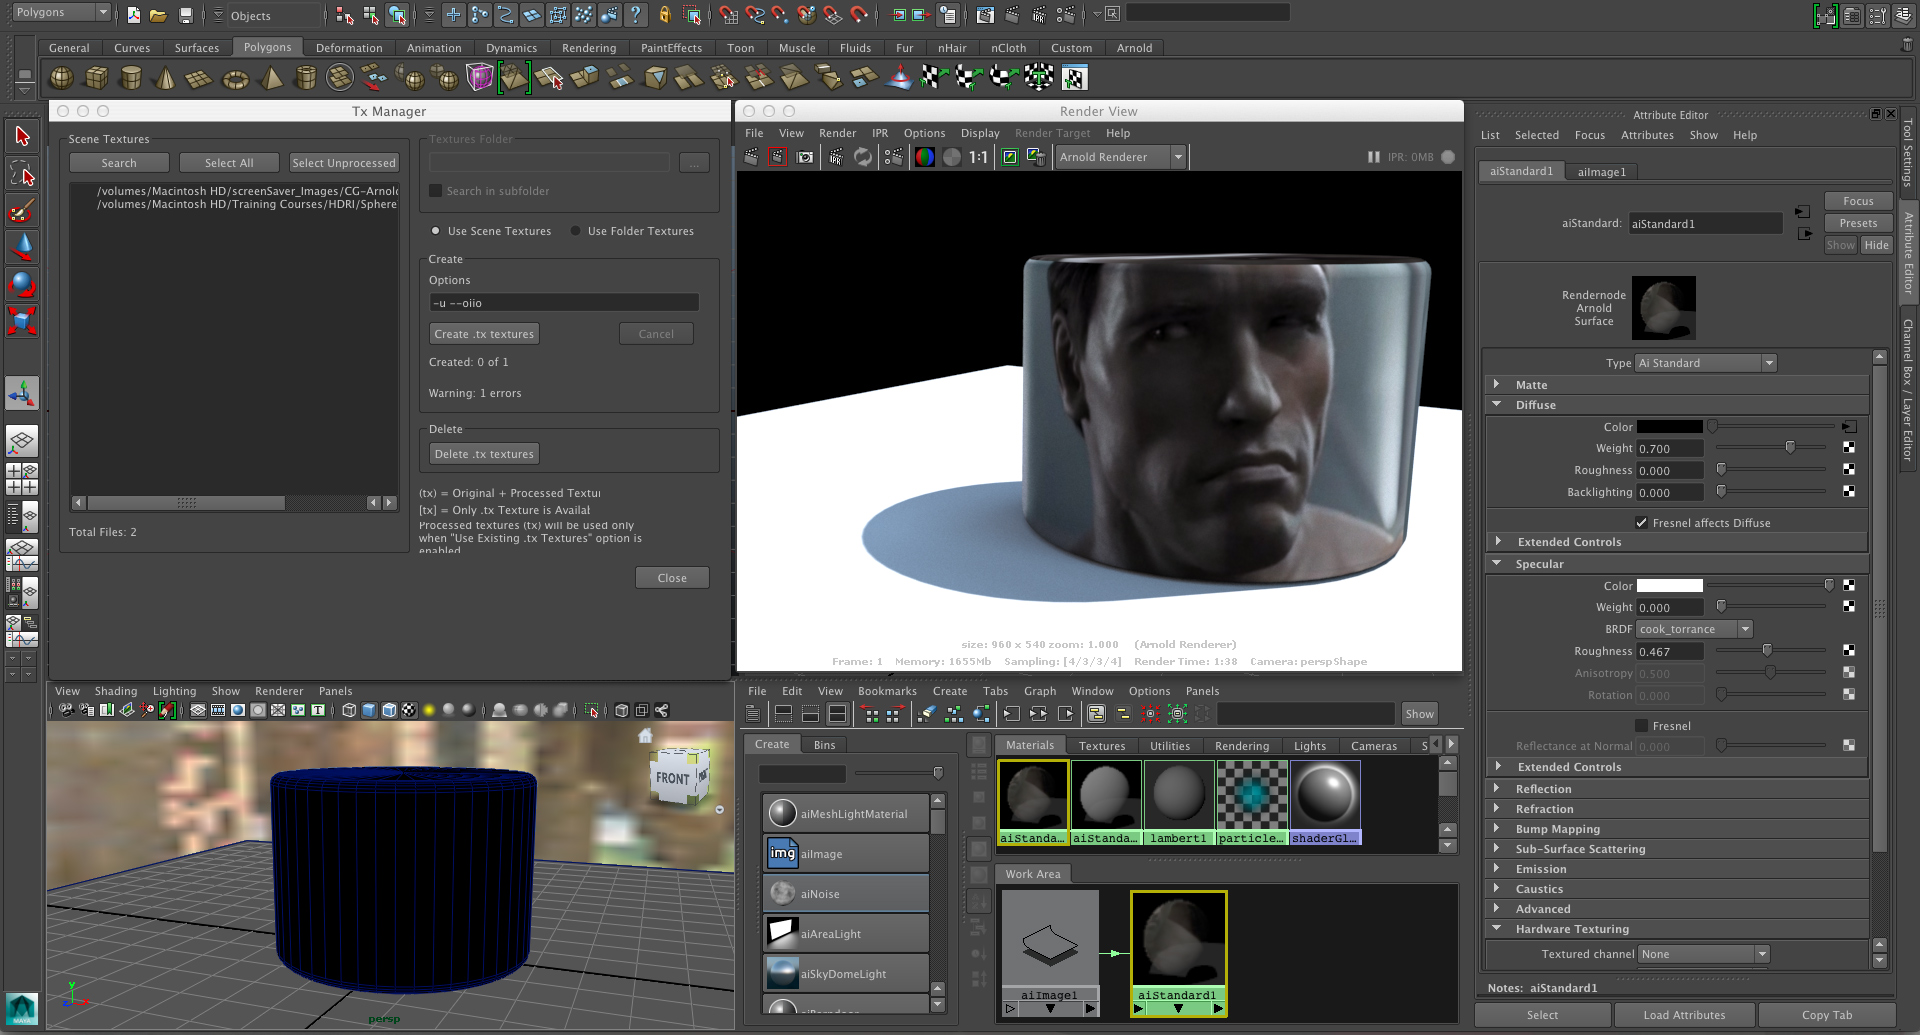 Solid Angle Houdini To Arnold v1.8.1 for Houdini (Win/Mac/Lnx)